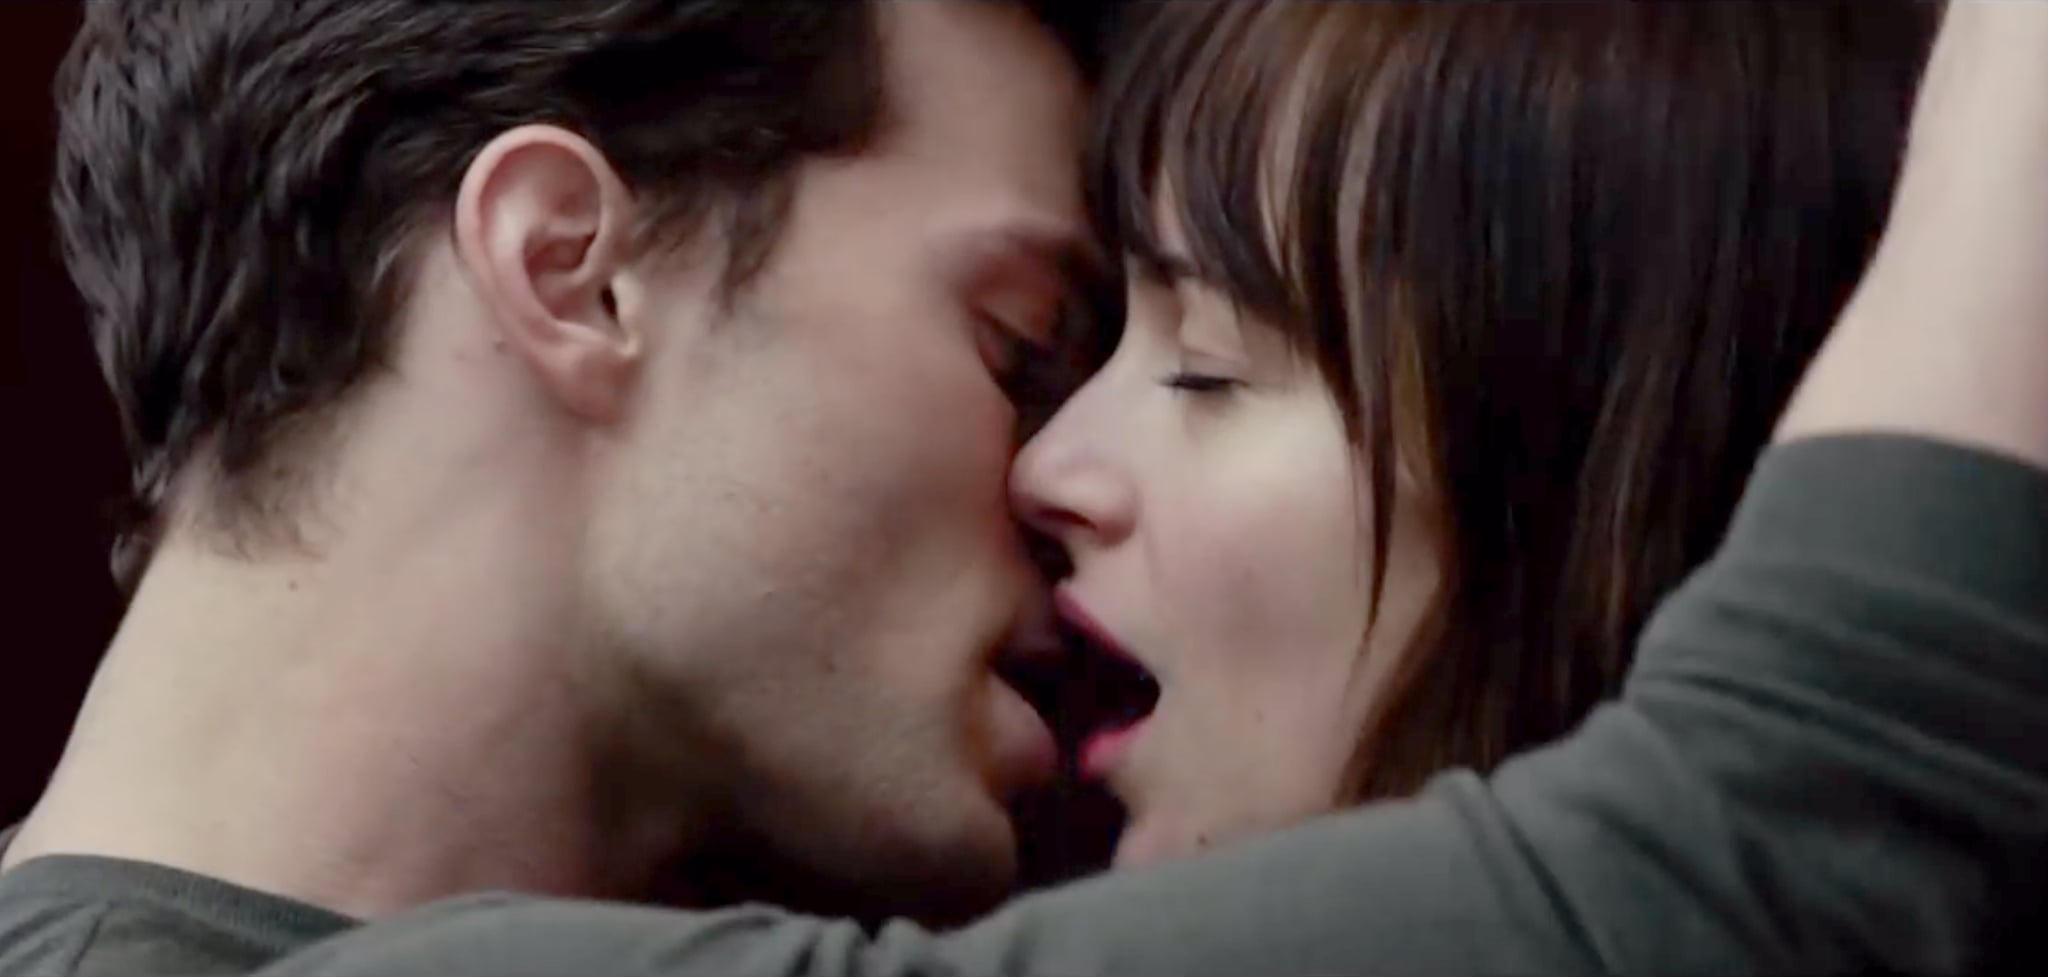 50 shades of grey sex excerpts love uk share this link